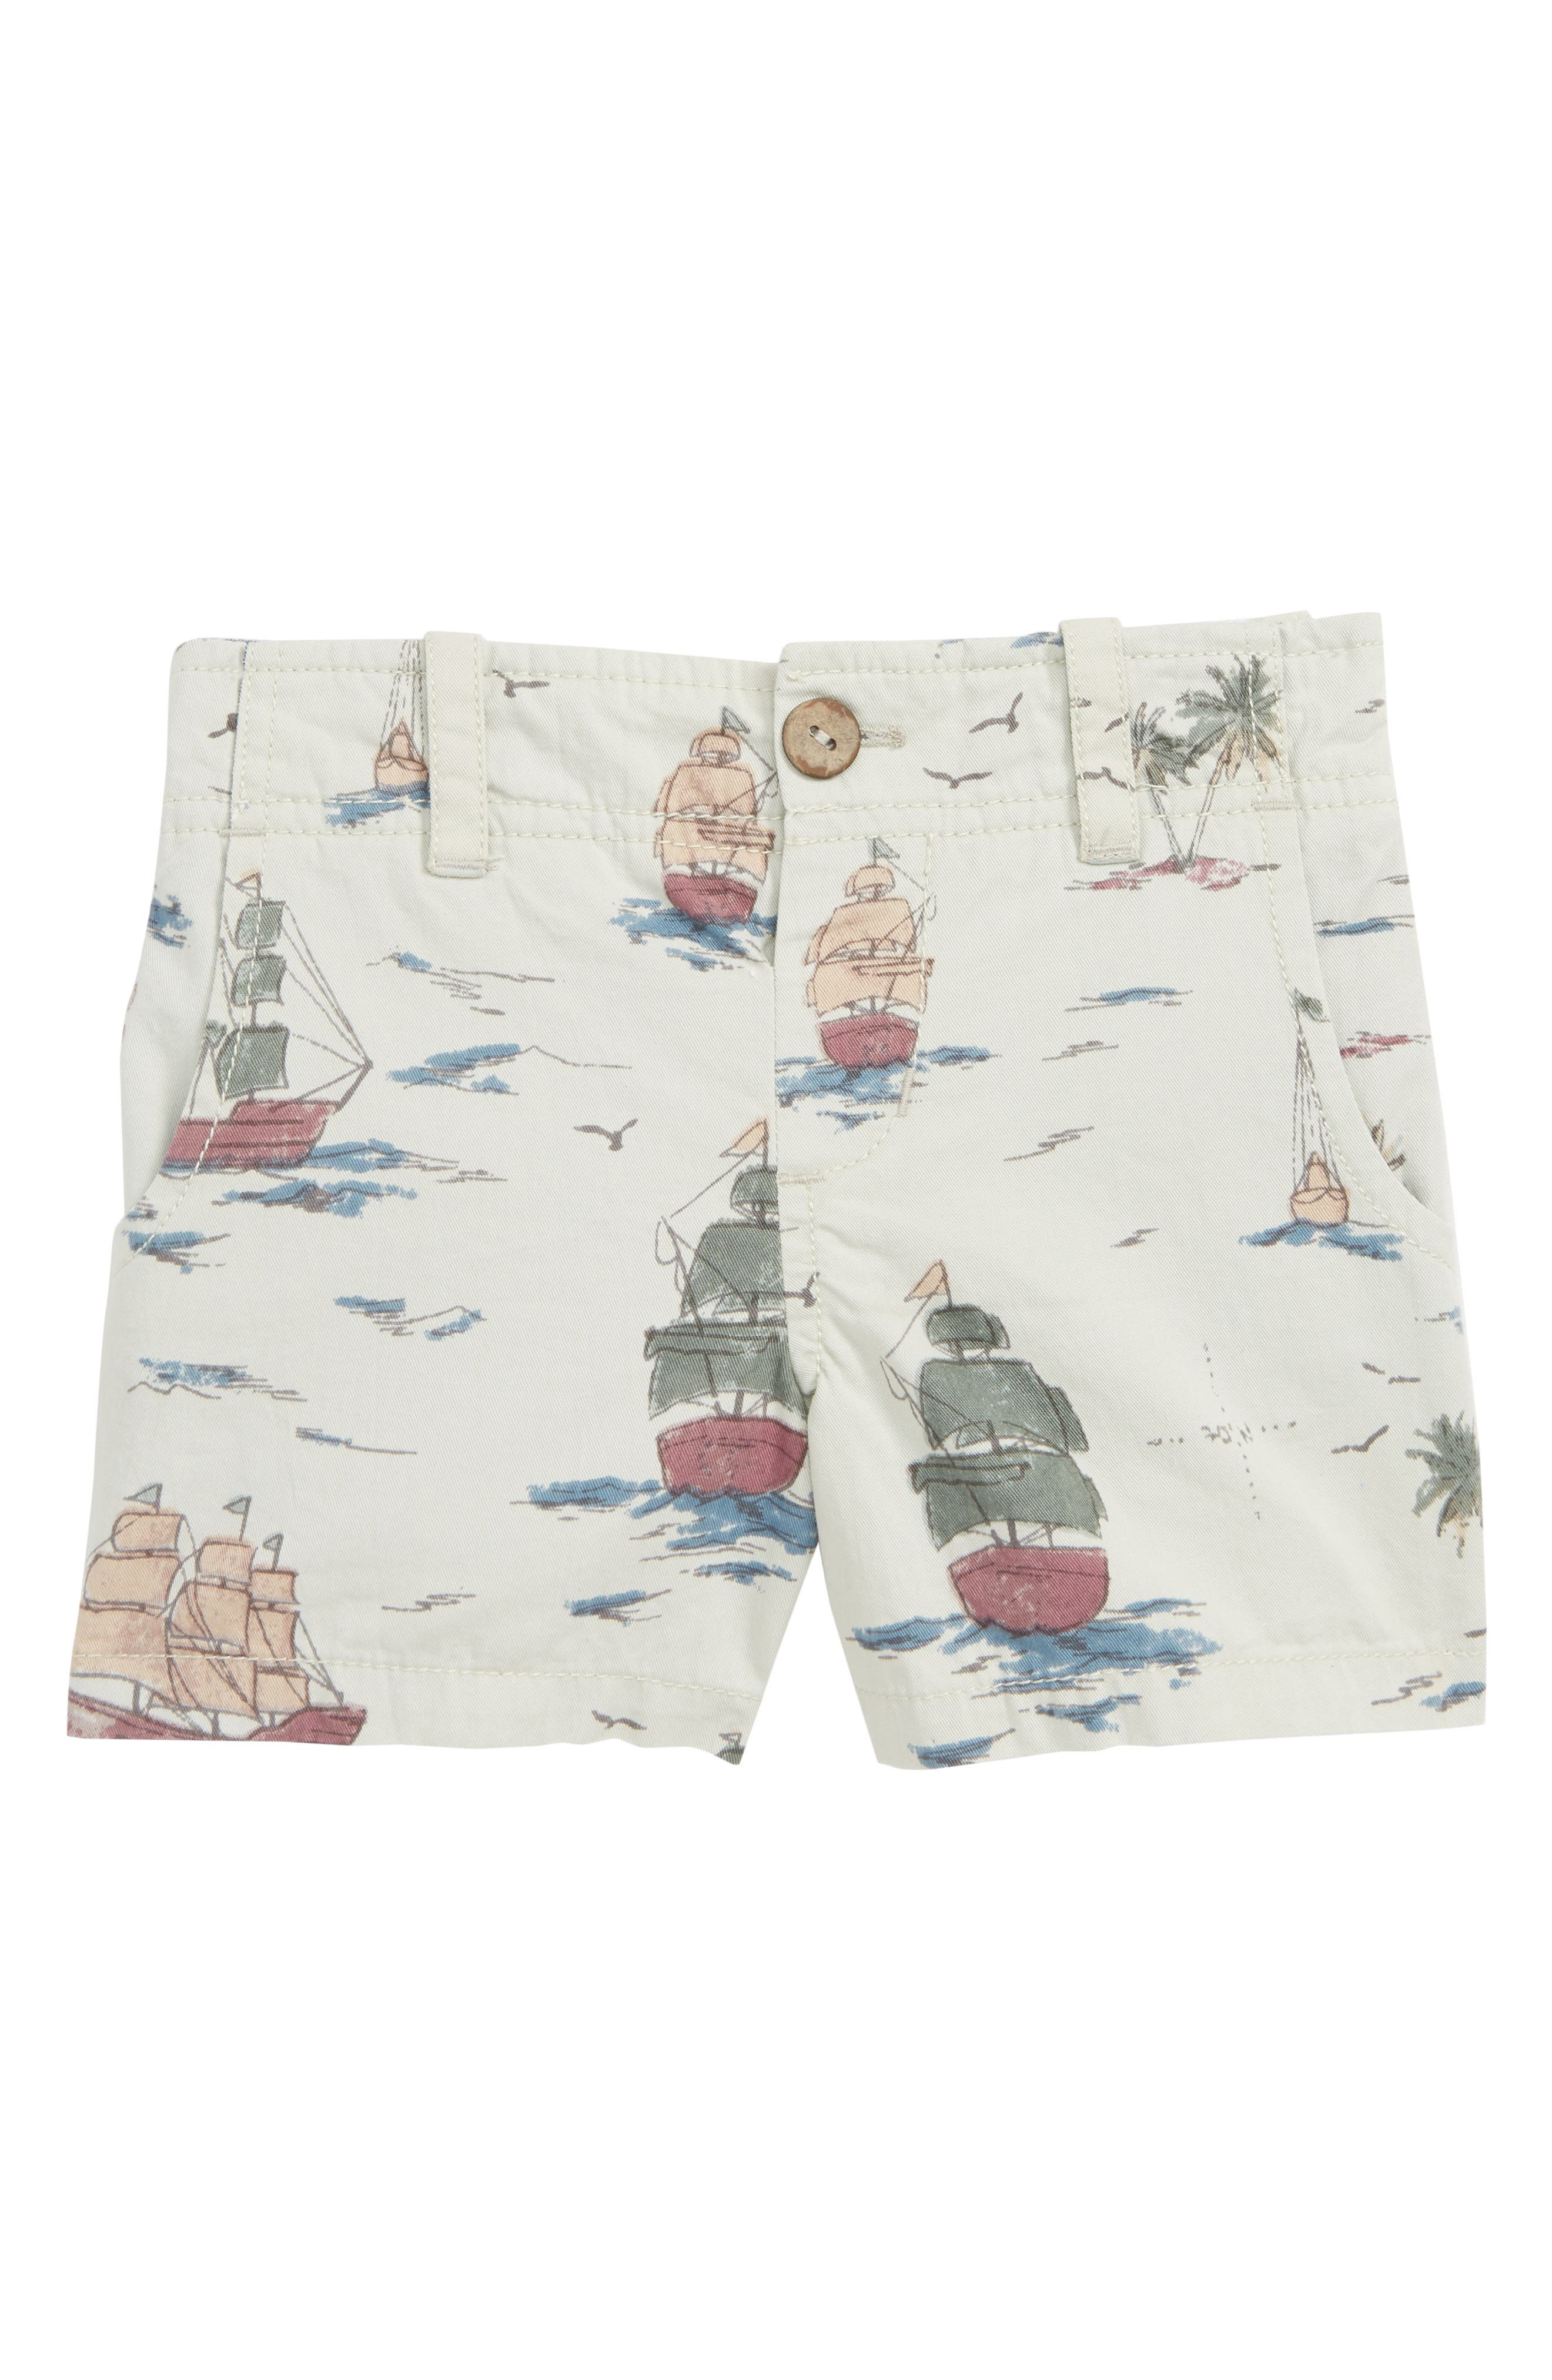 PEEK ESSENTIALS, Pirate Ship Shorts, Main thumbnail 1, color, KHAKI